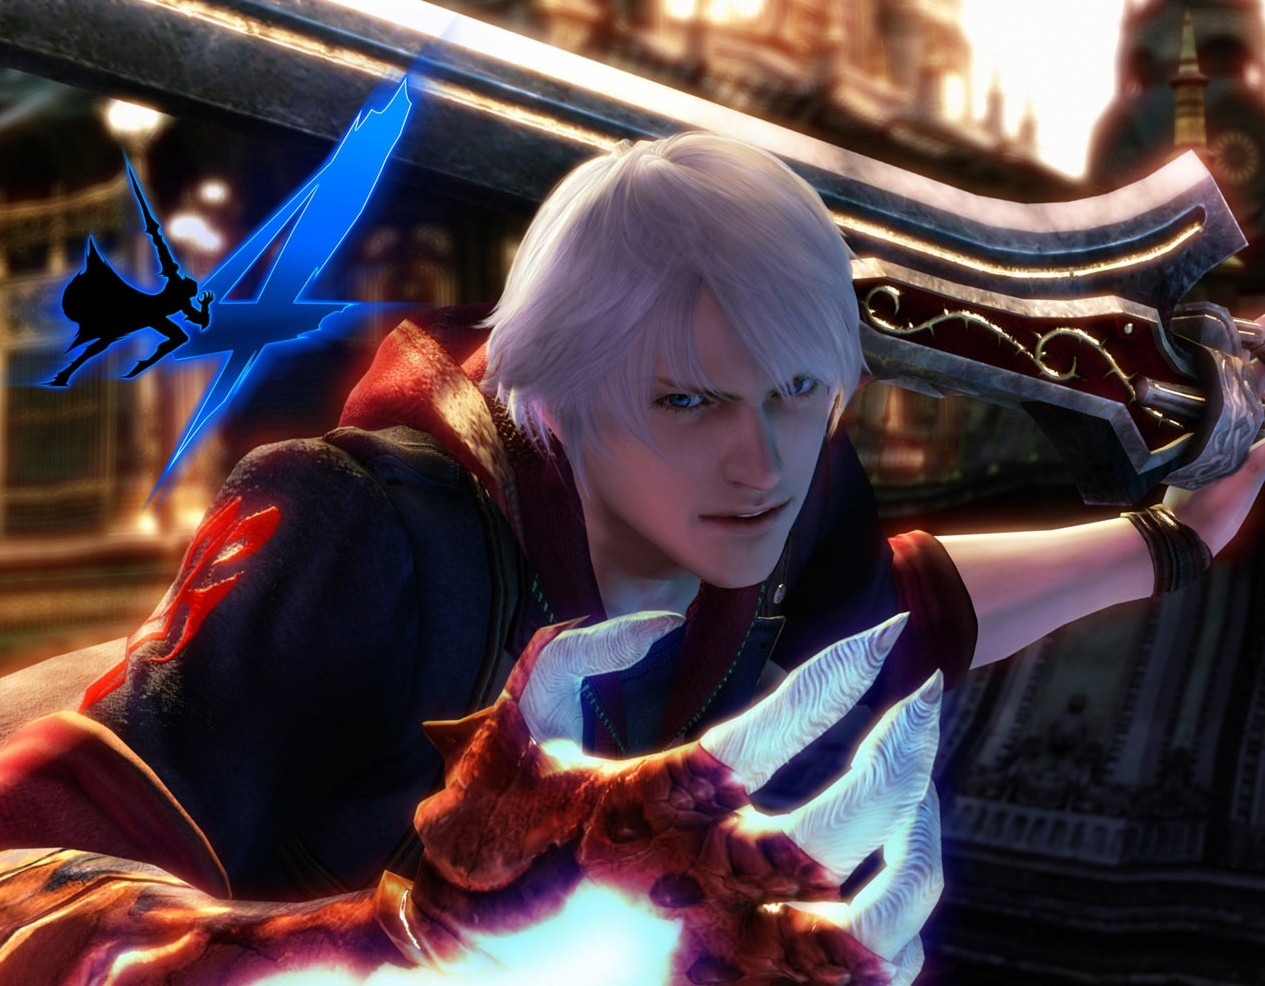 Devil-May-Cry4-2